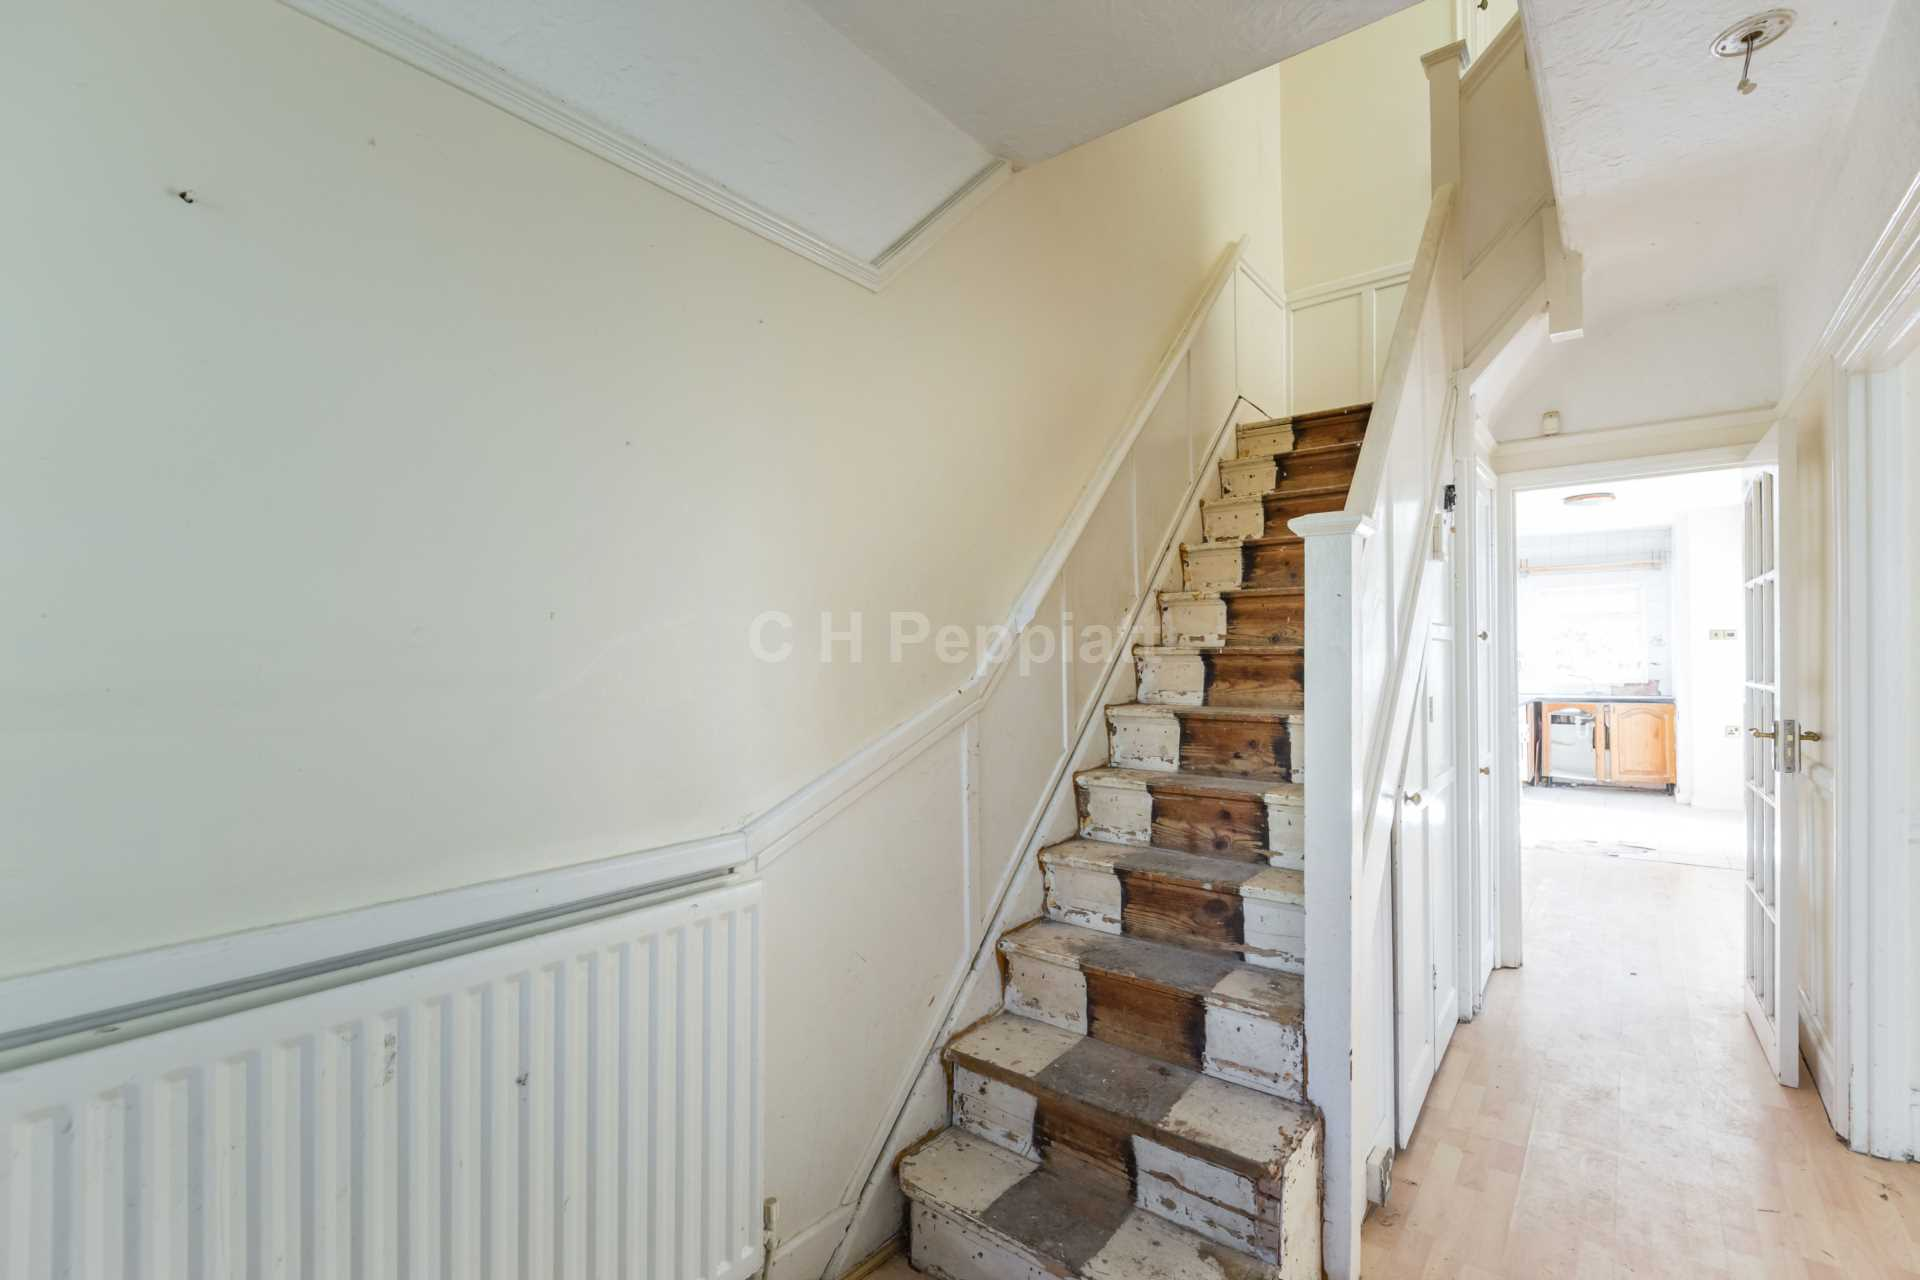 Halstead Road, Winchmore Hill, N21, Image 7